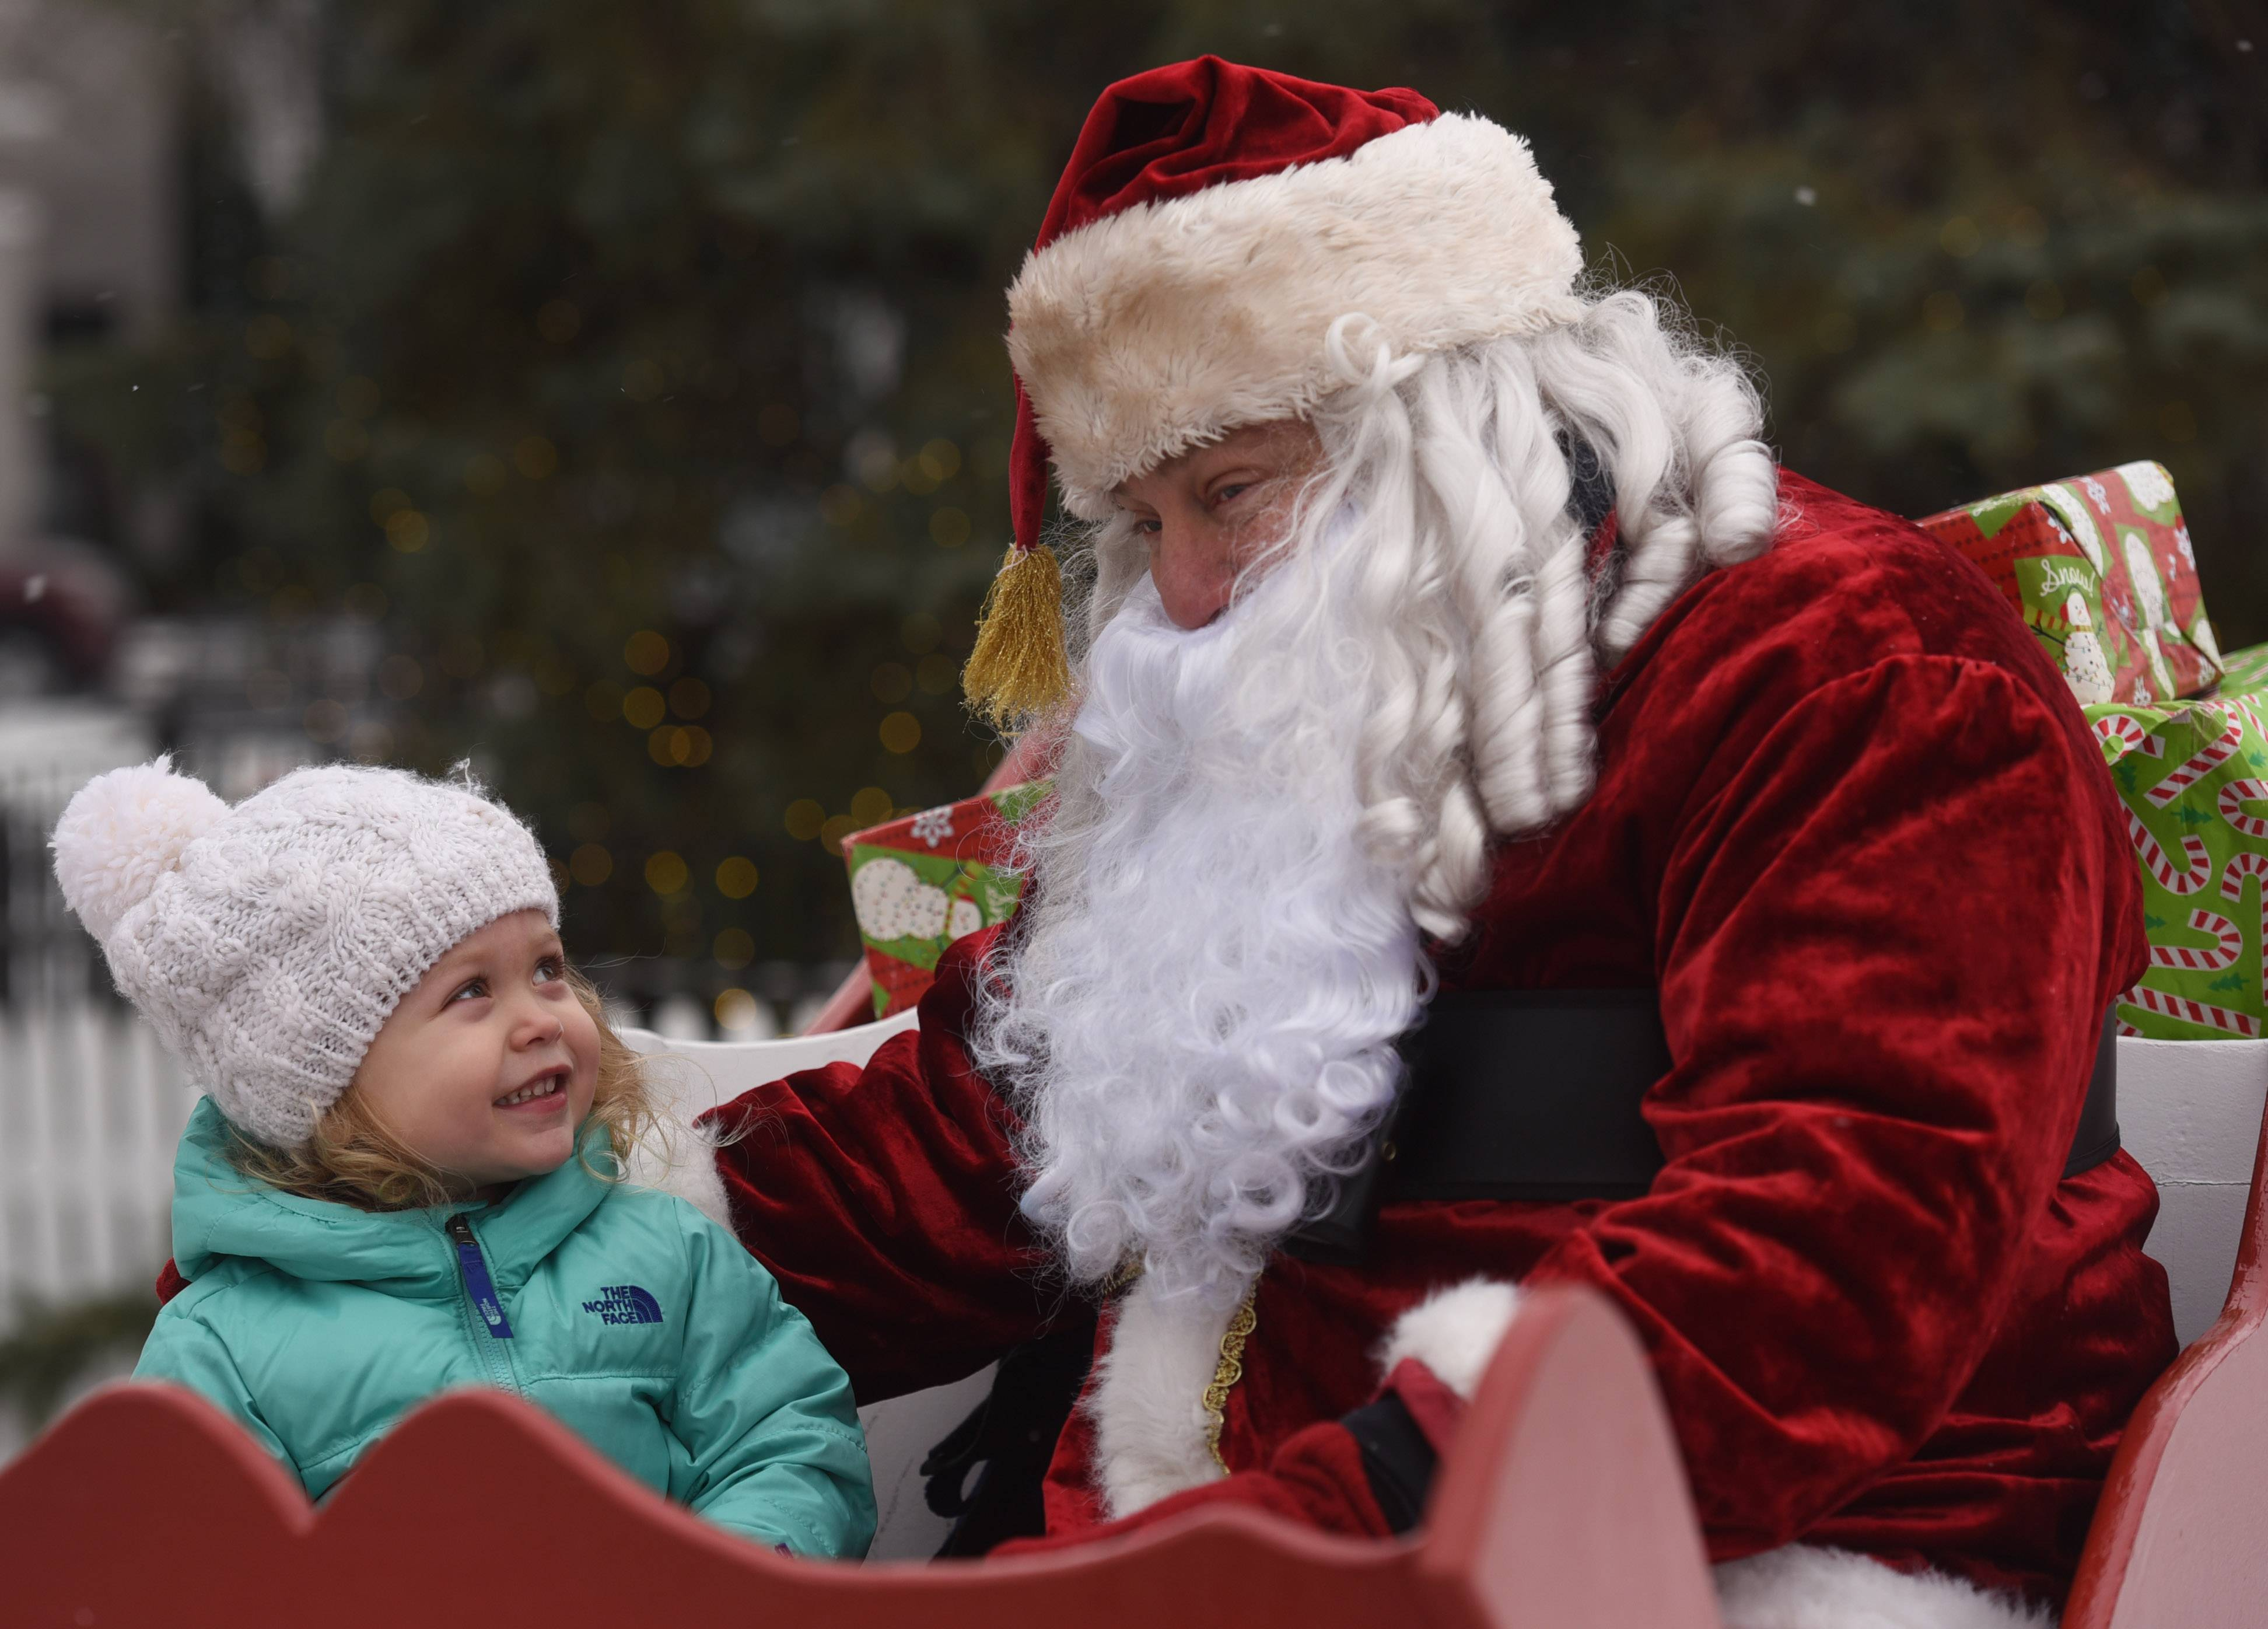 Visit with Santa Saturday during the Dickens of a Holiday event in downtown Libertyville.